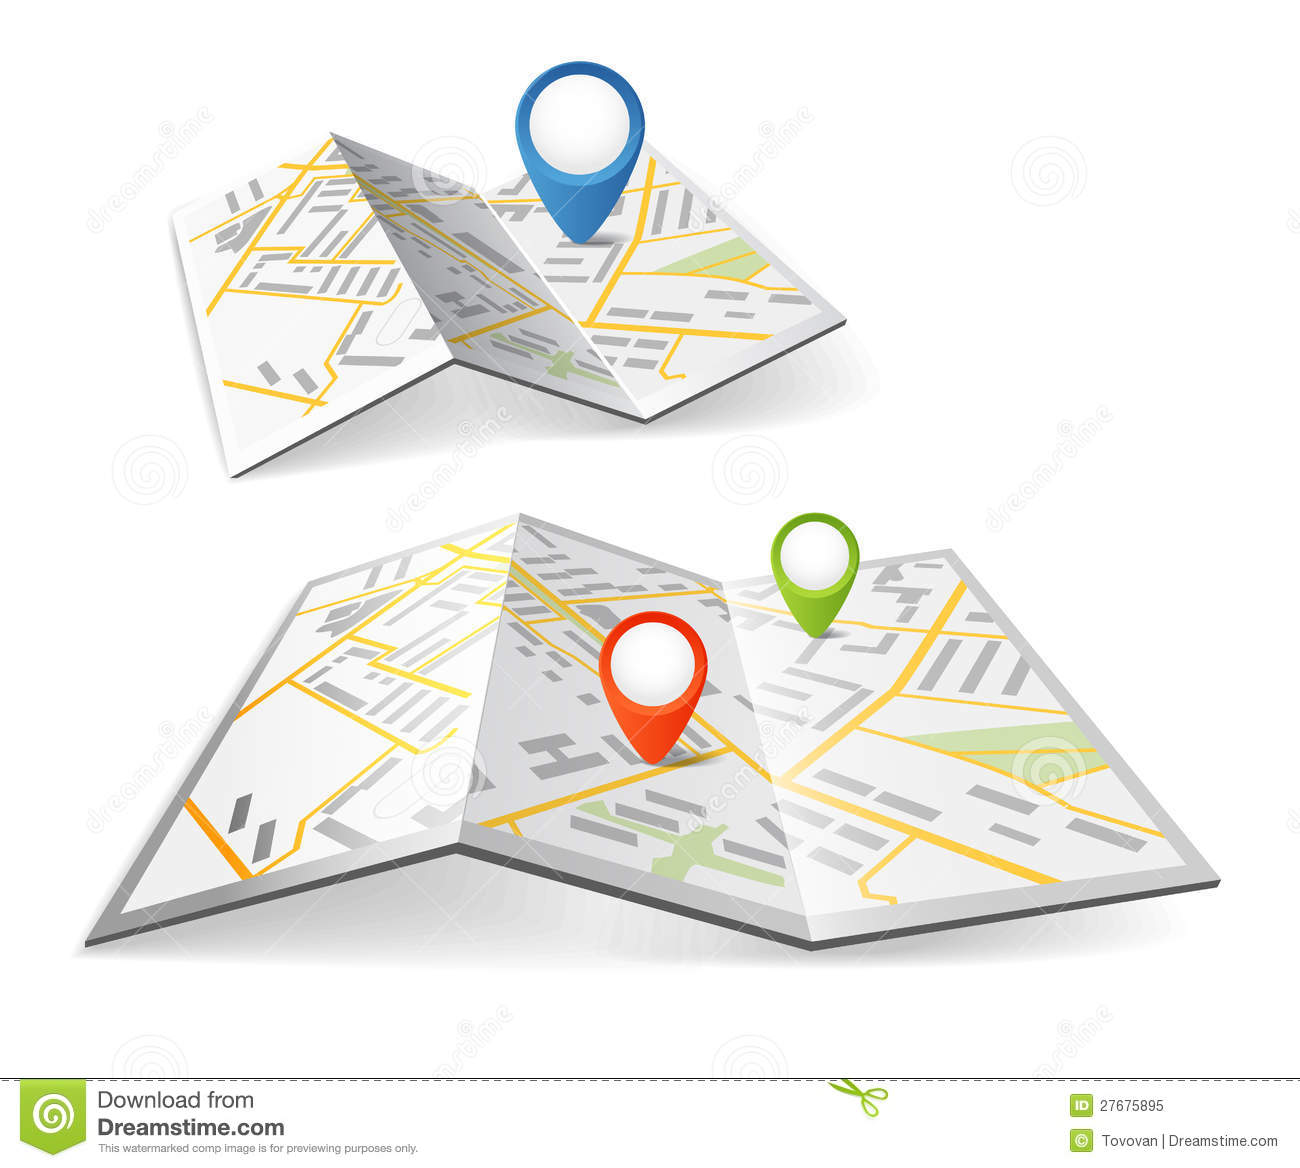 College road map clipart. Clipartfox folded